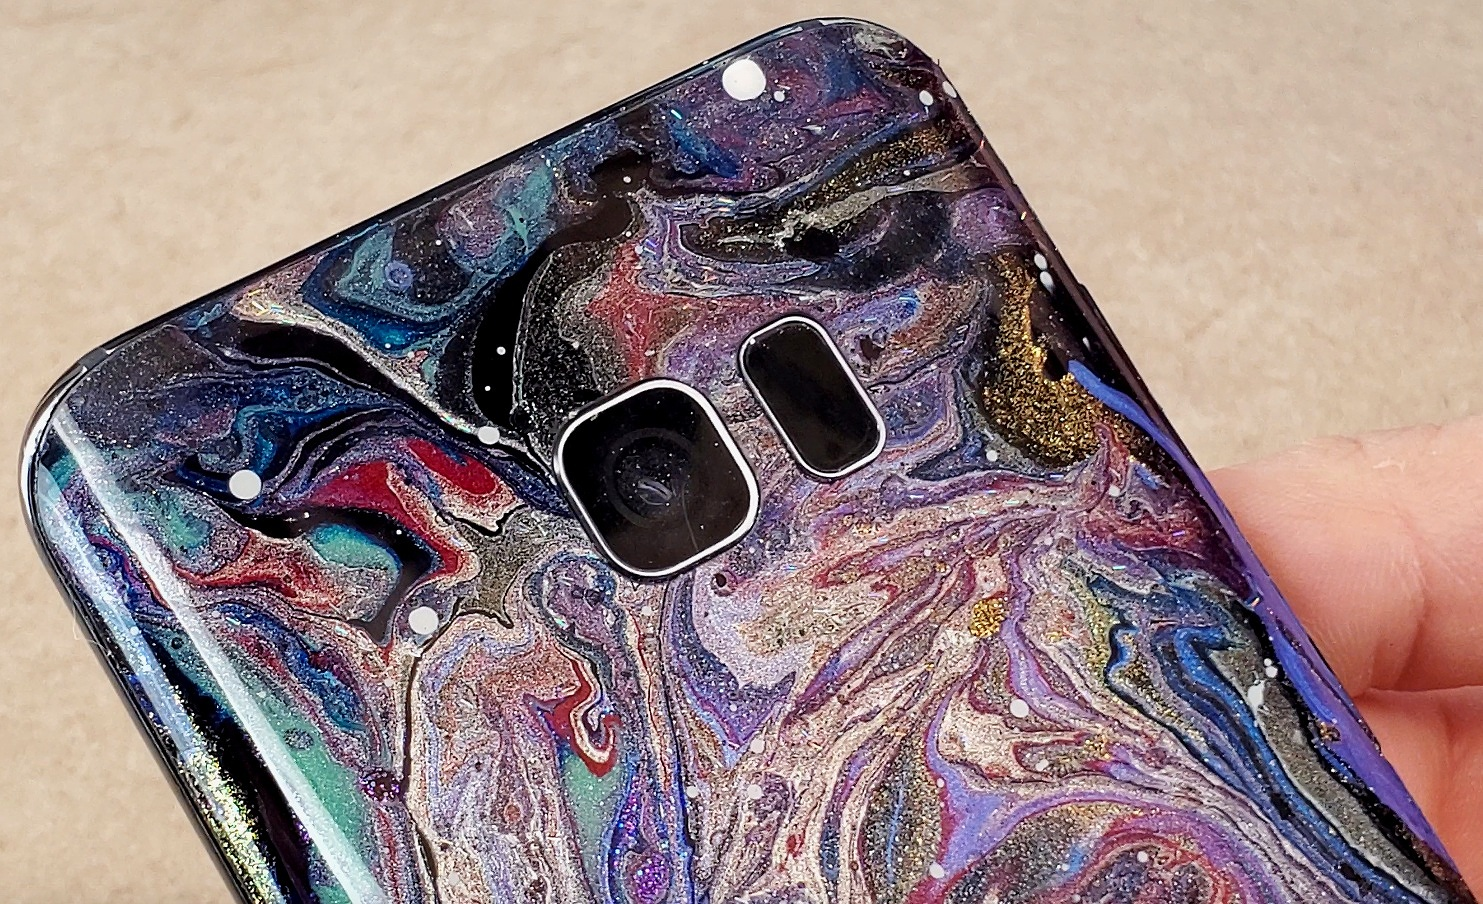 Xyla's steps for a galaxy inspired phone mod -